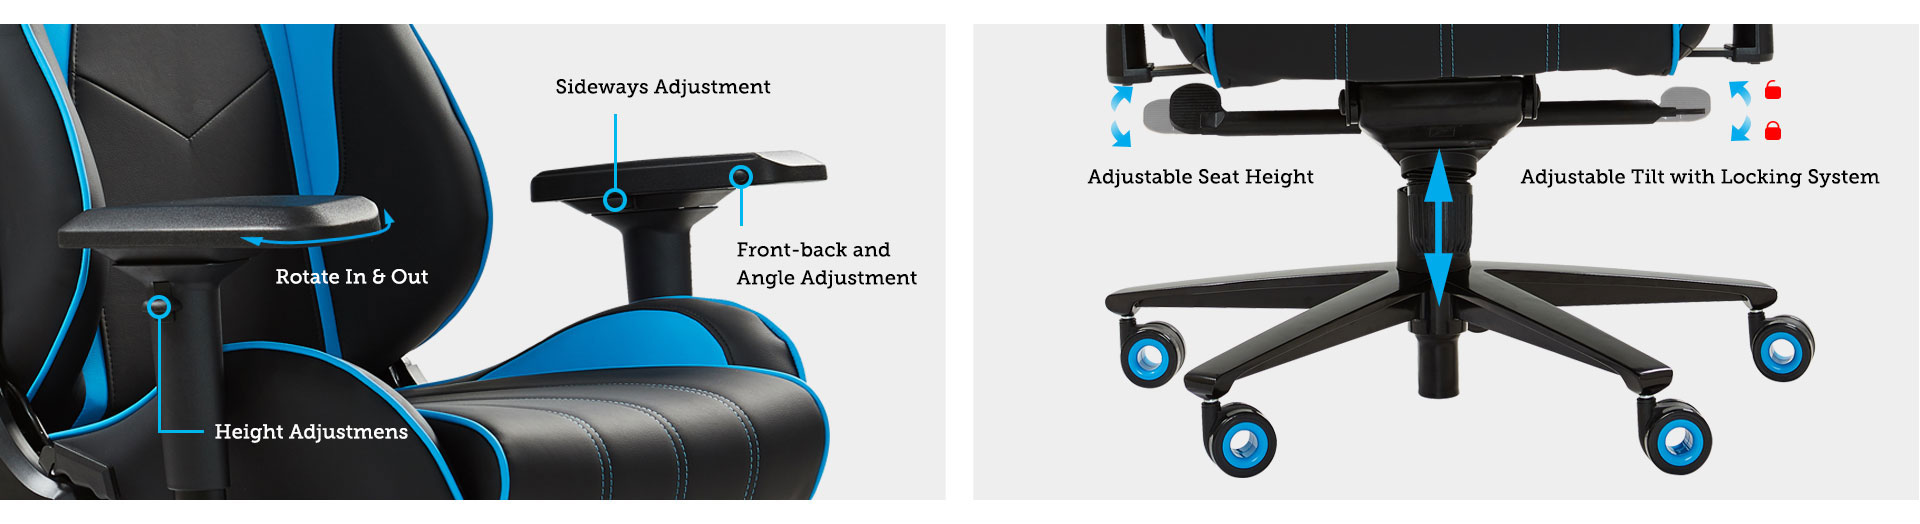 Armrests & The Tray of E-WIN Gaming Chairs